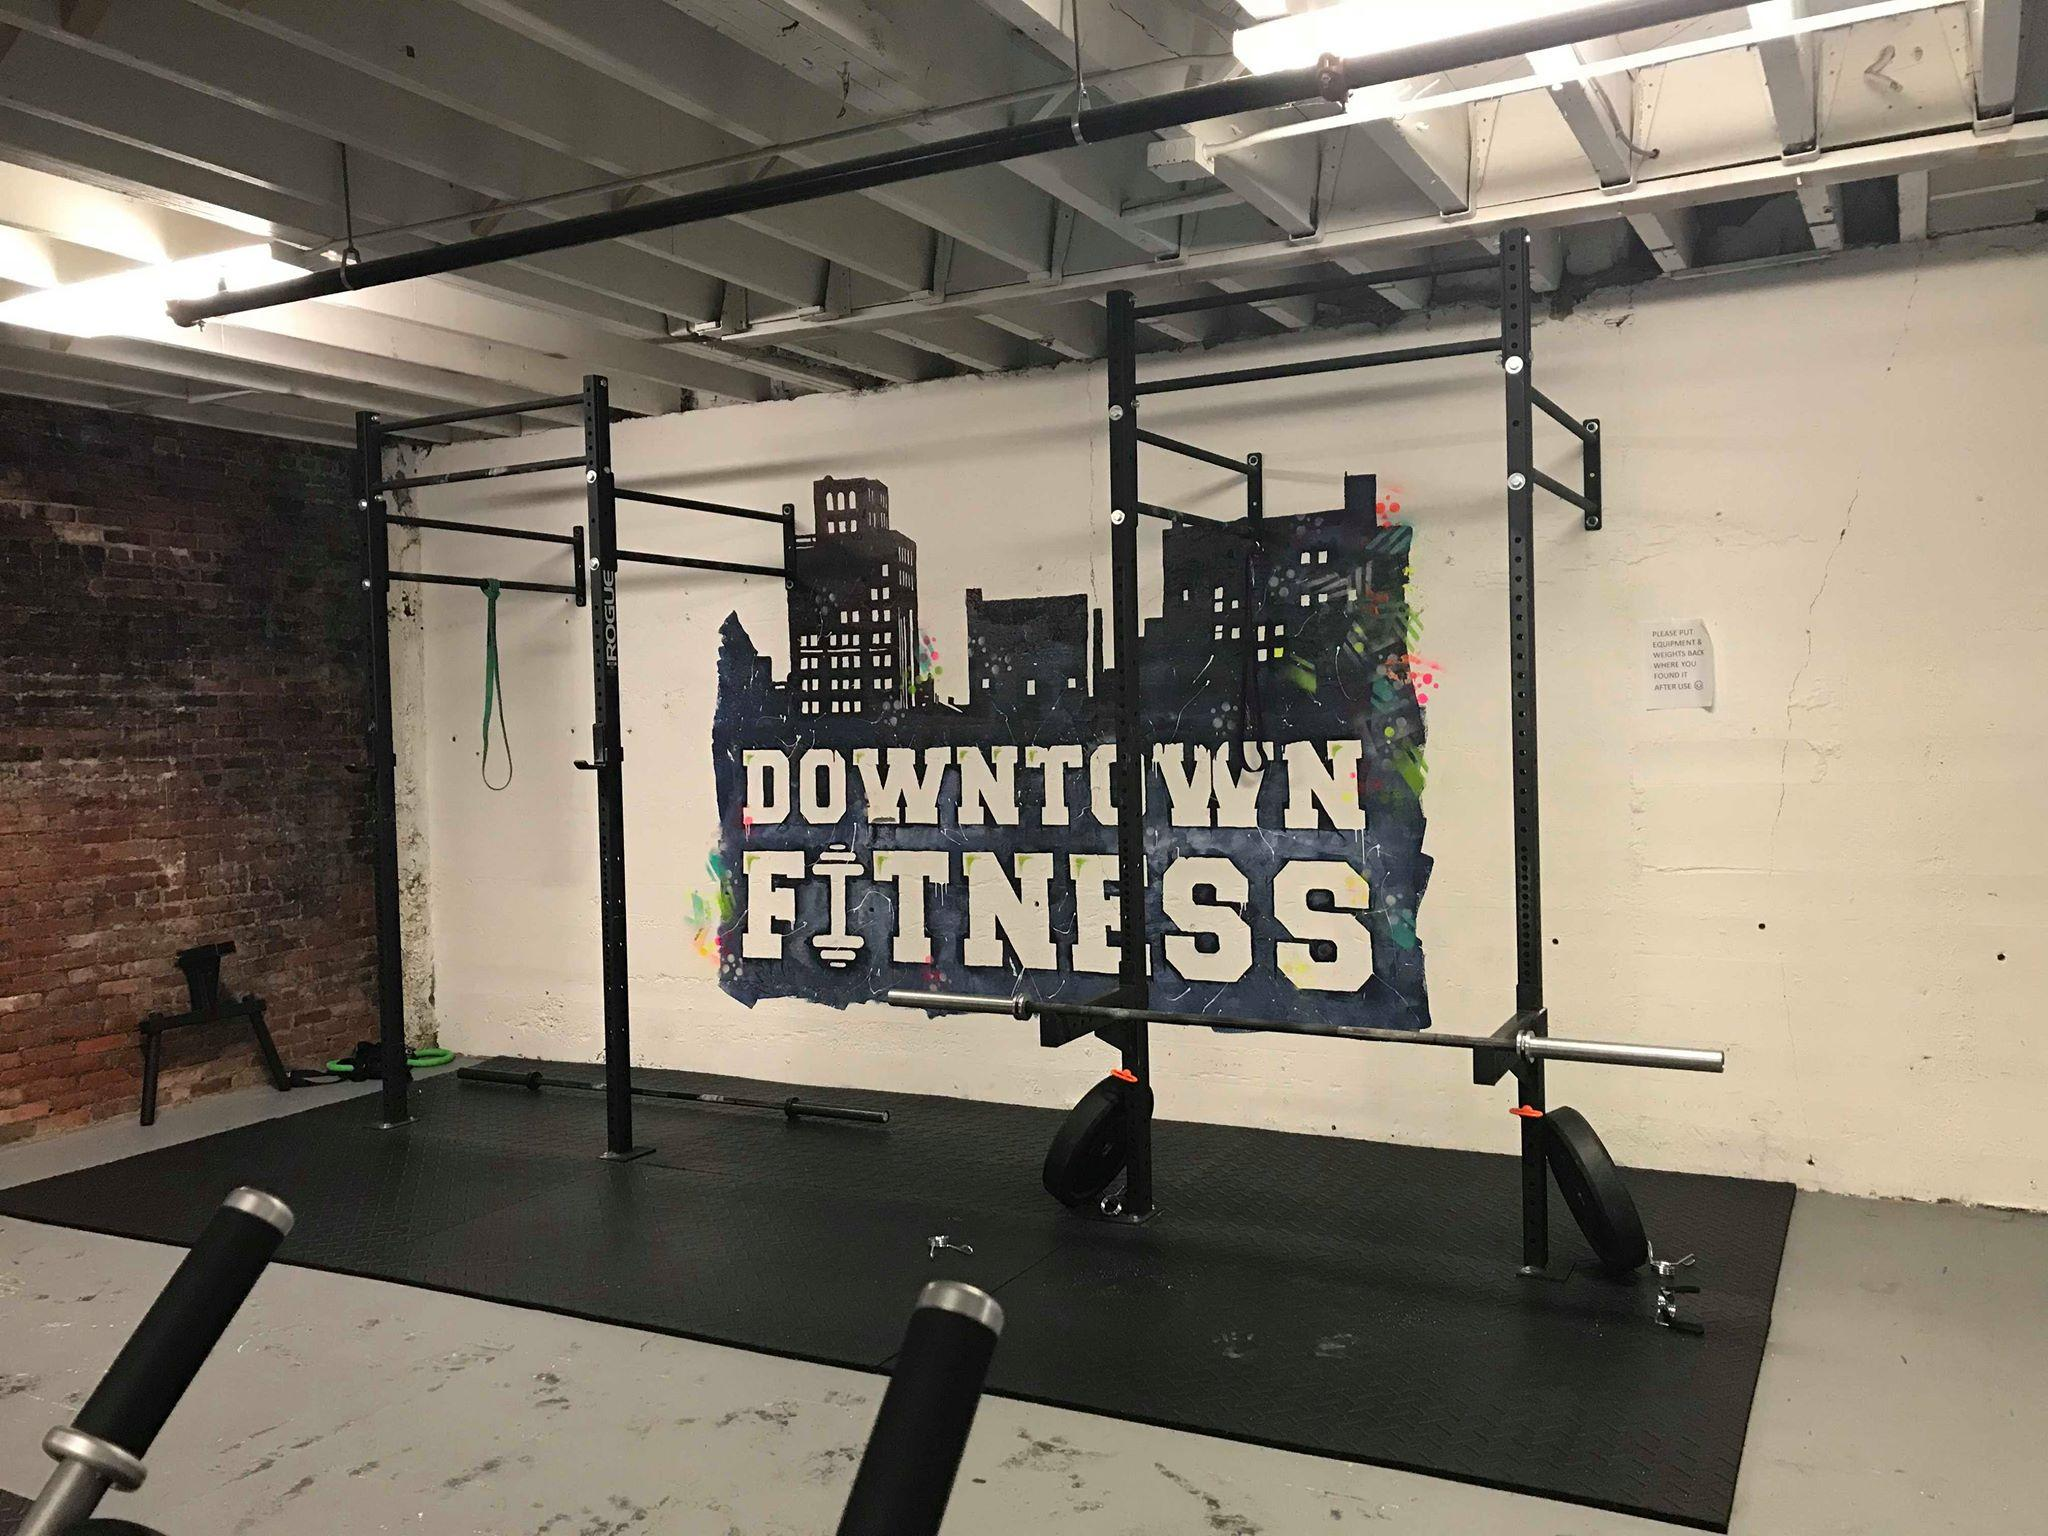 Downtown Fitness image 18